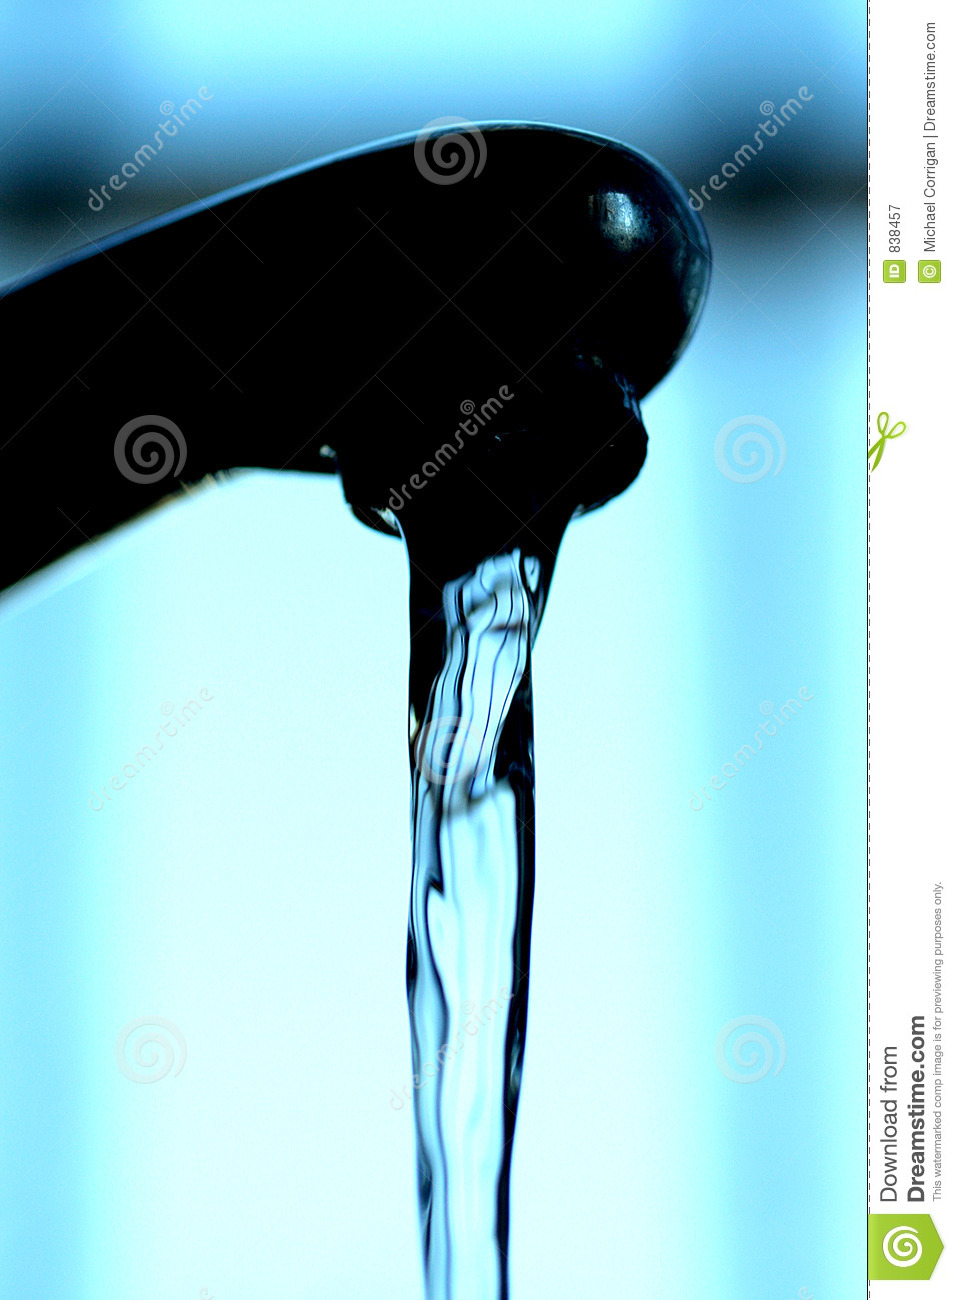 Water flowing from a tap